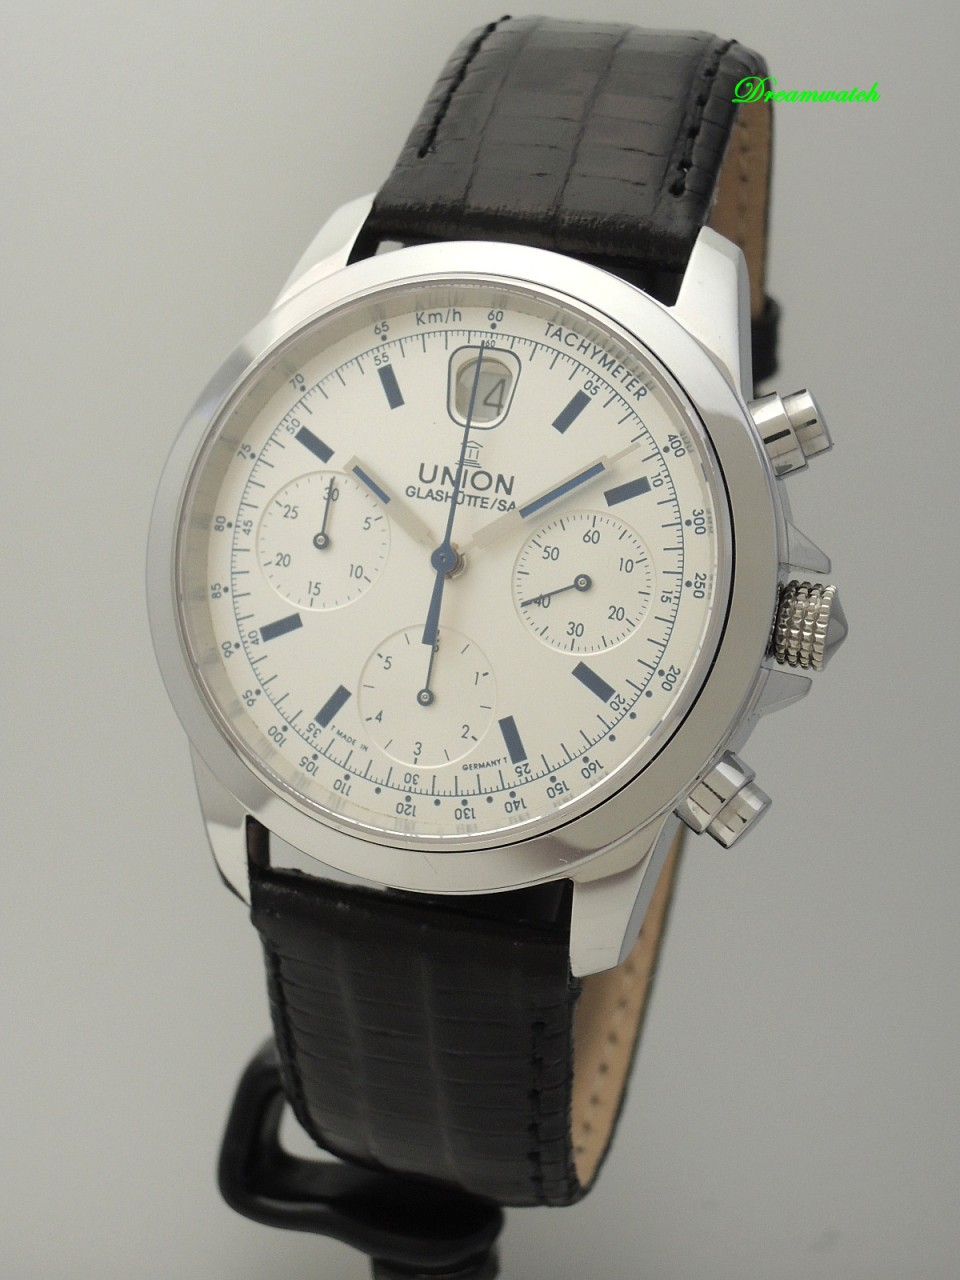 Union Glashütte Tradition Chronograph Stahl/Leder, Box+Papiere+Service